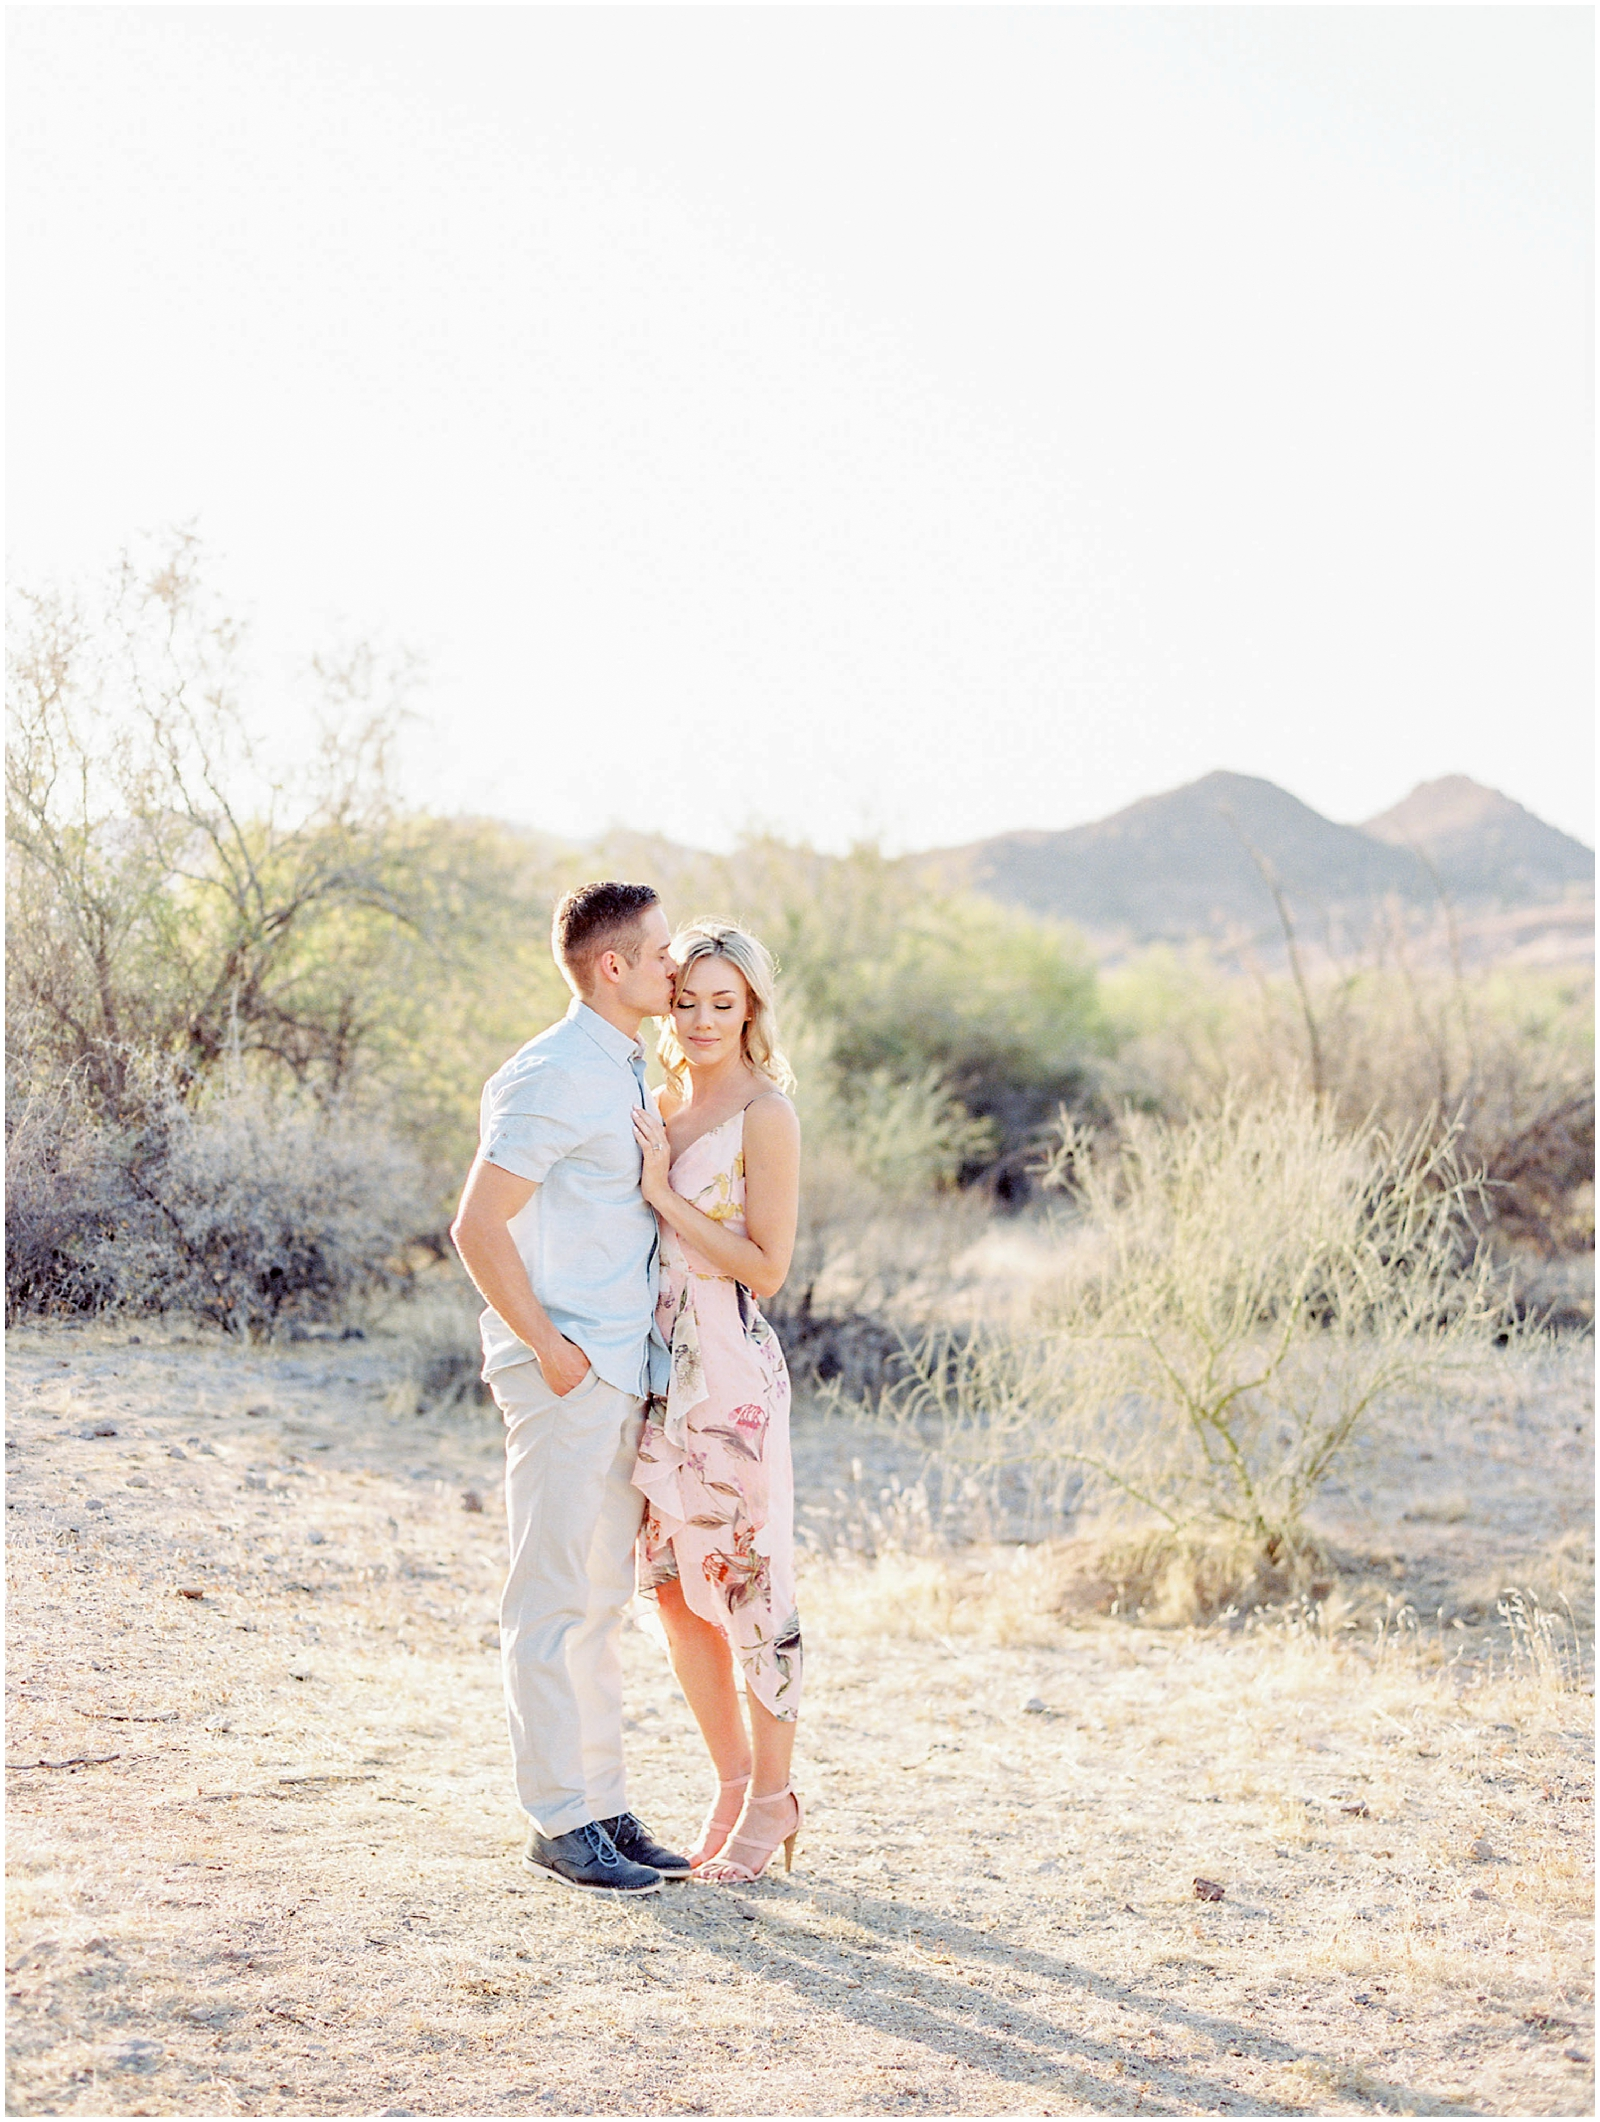 SUPERSTITION MOUNTAIN ENGAGEMENT – KRISTIN & ZACH